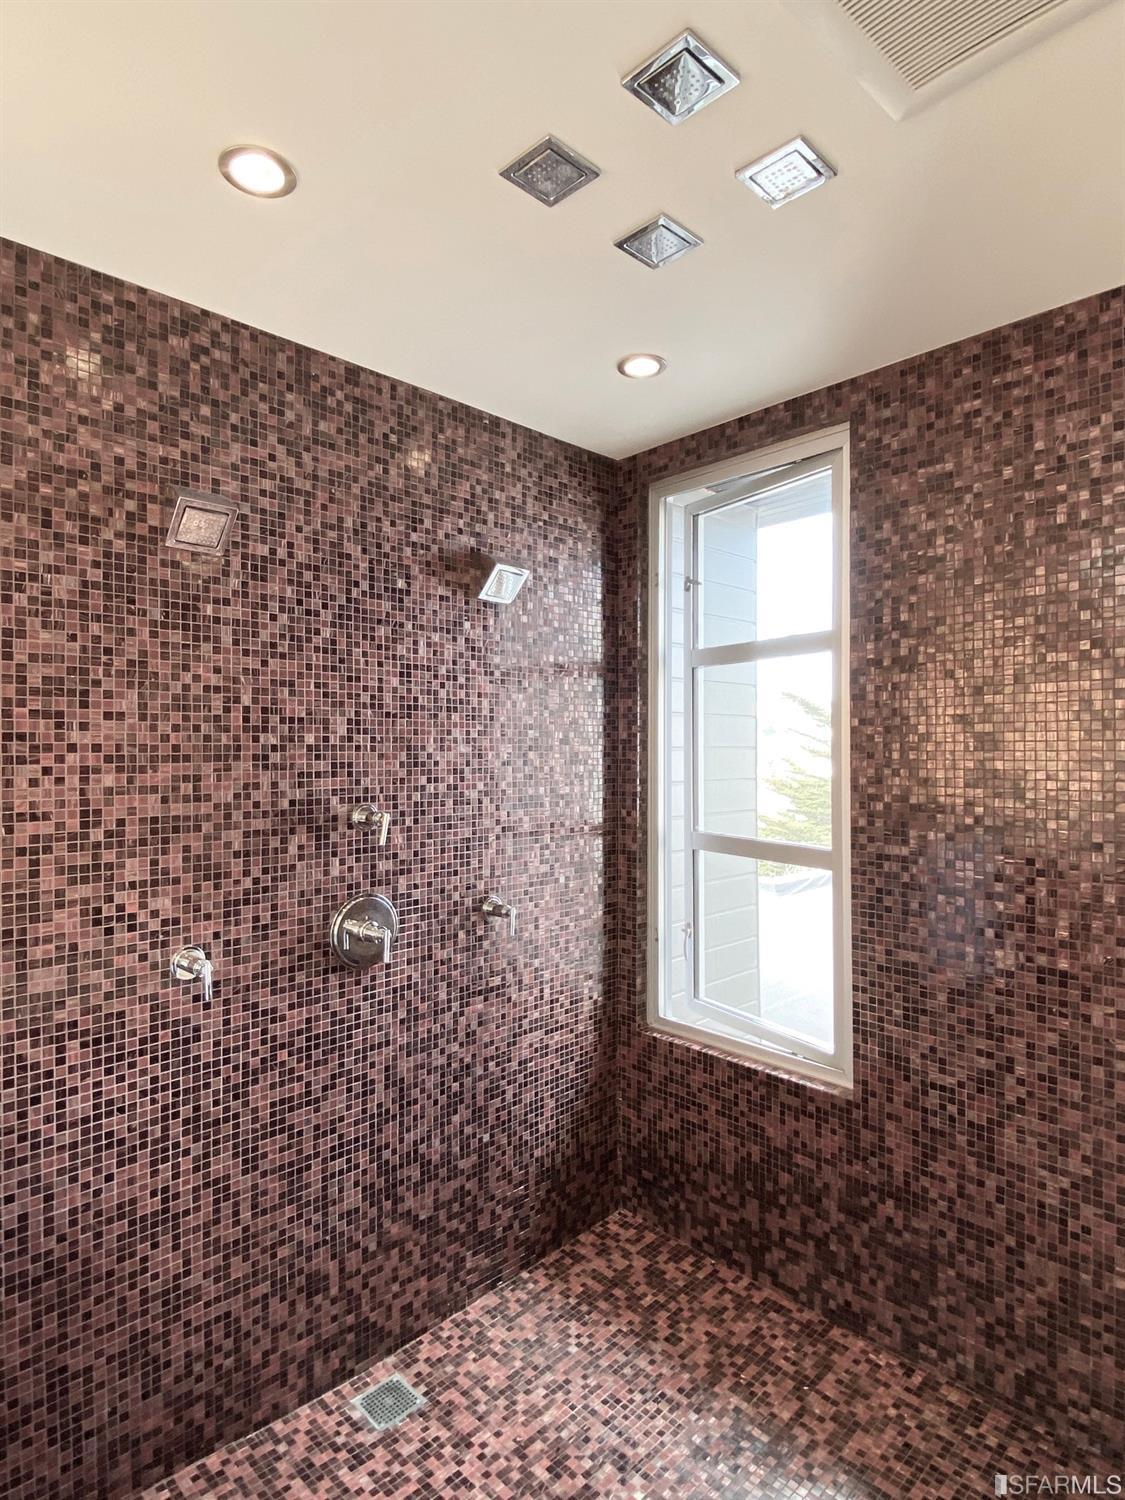 Master bath large double shower, double sinks and granite counters, and soaking tub and skylight. Adjacent to the bathroom is a